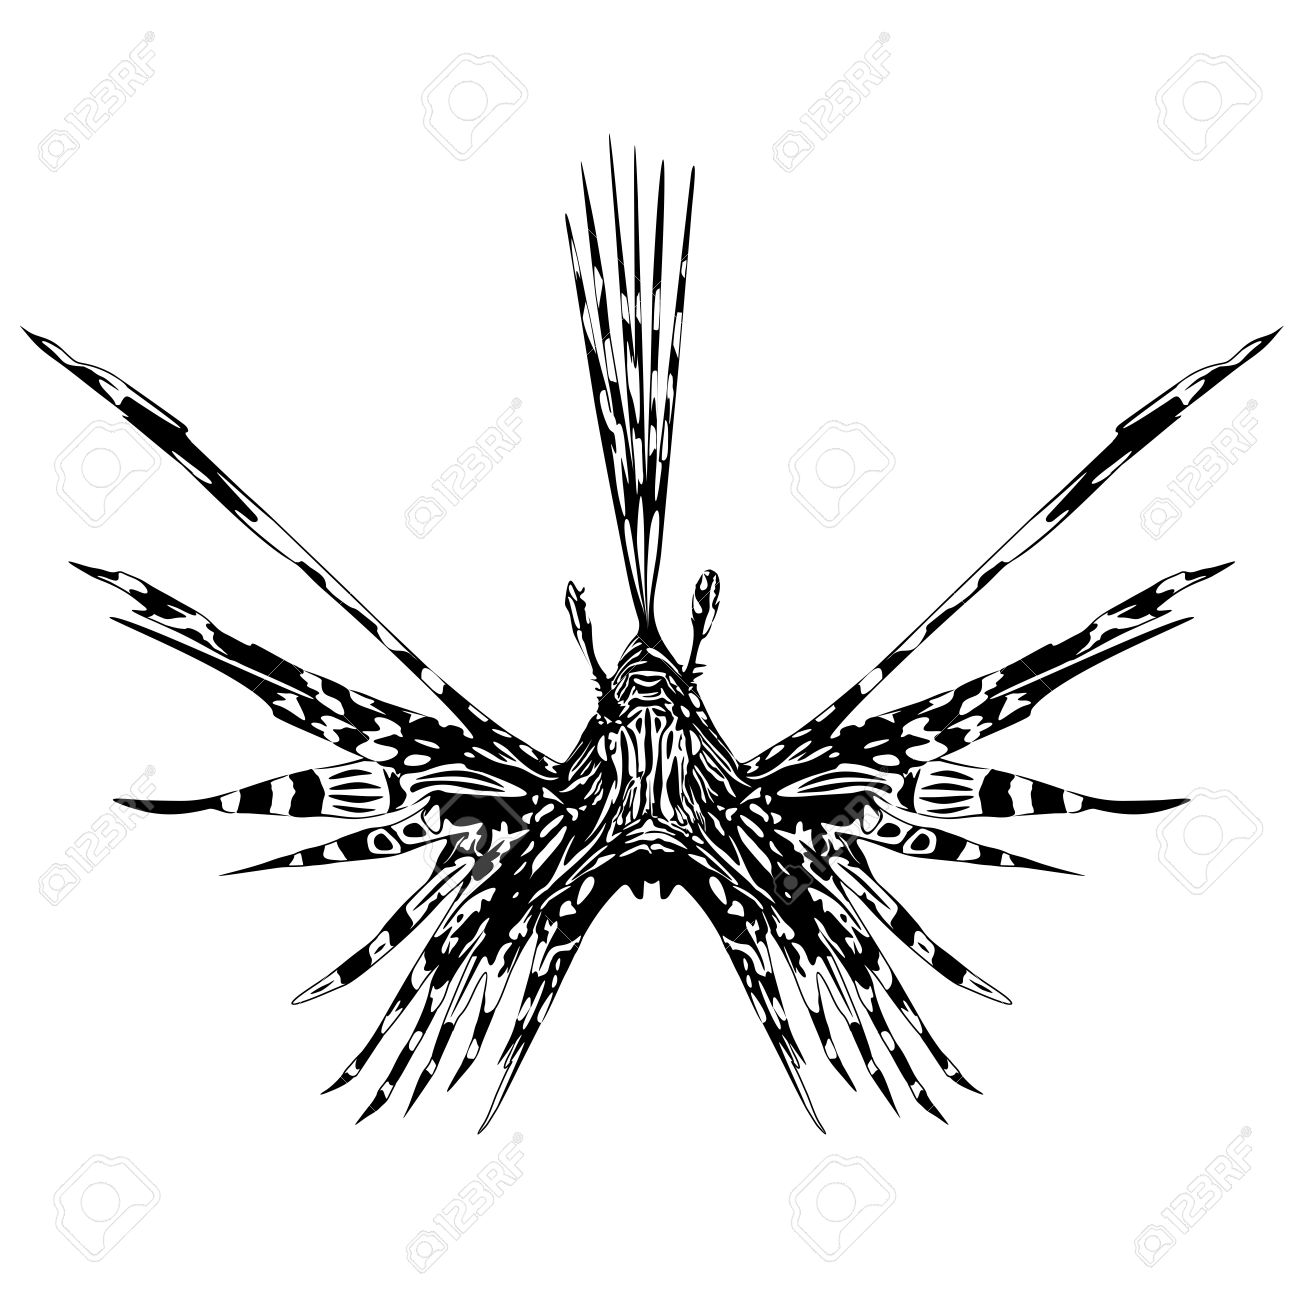 346c3e252 Lion Fish Tattoo Style Royalty Free Cliparts, Vectors, And Stock ...